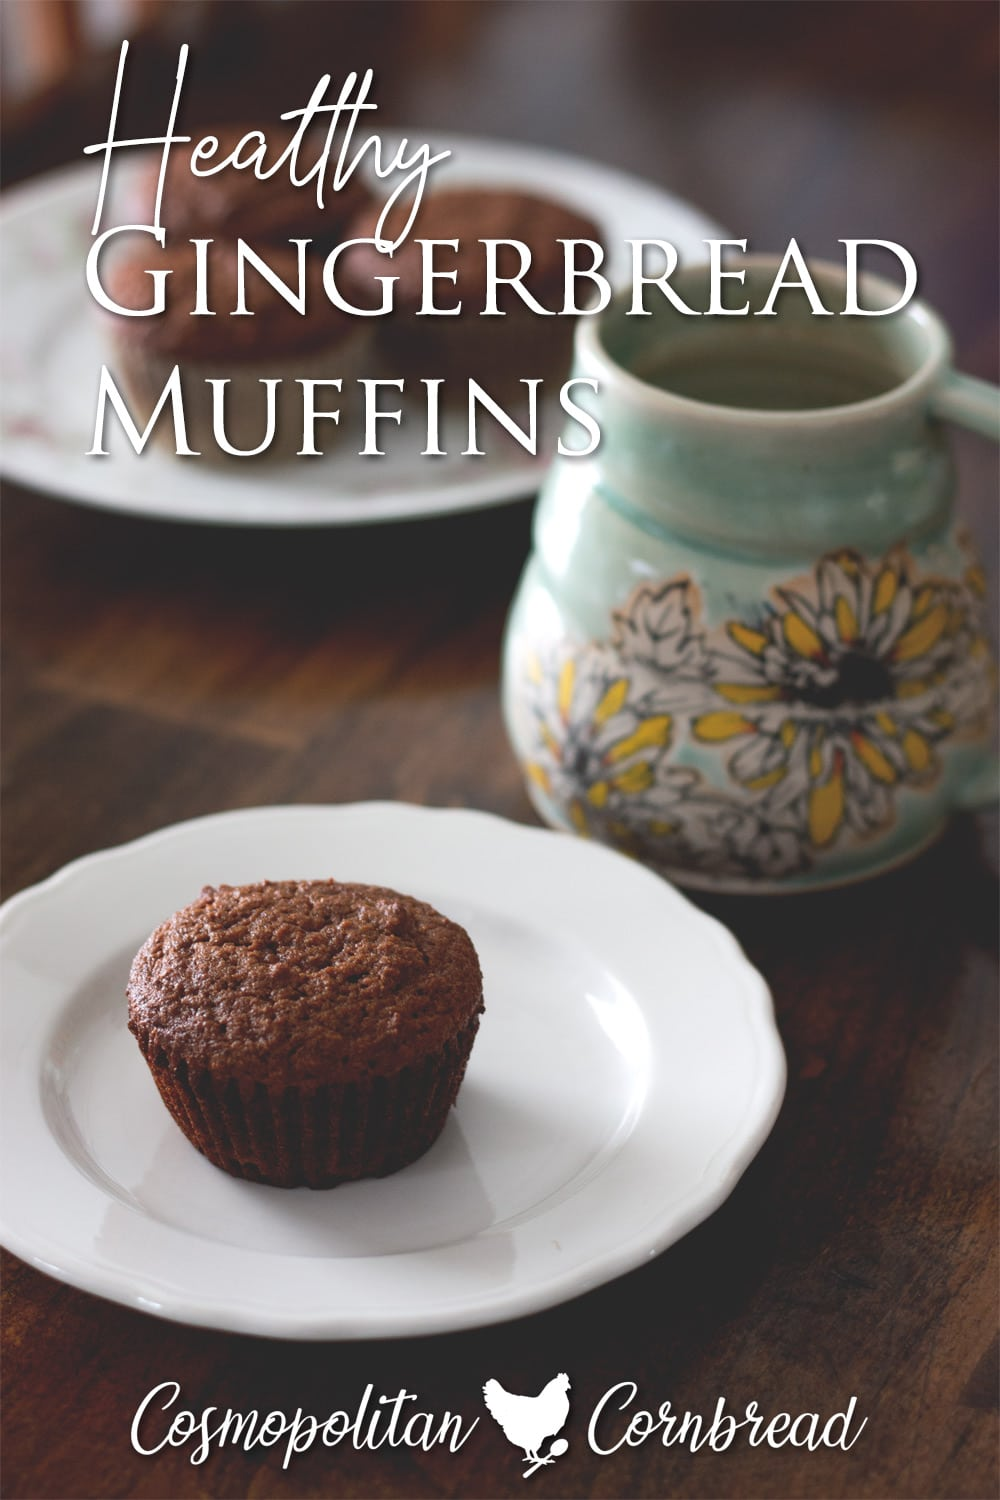 These delicious and warmly spiced gingerbread muffins are a wonderful way to start your day - great for breakfast or a snack! #paleo #lowcarb #healthy